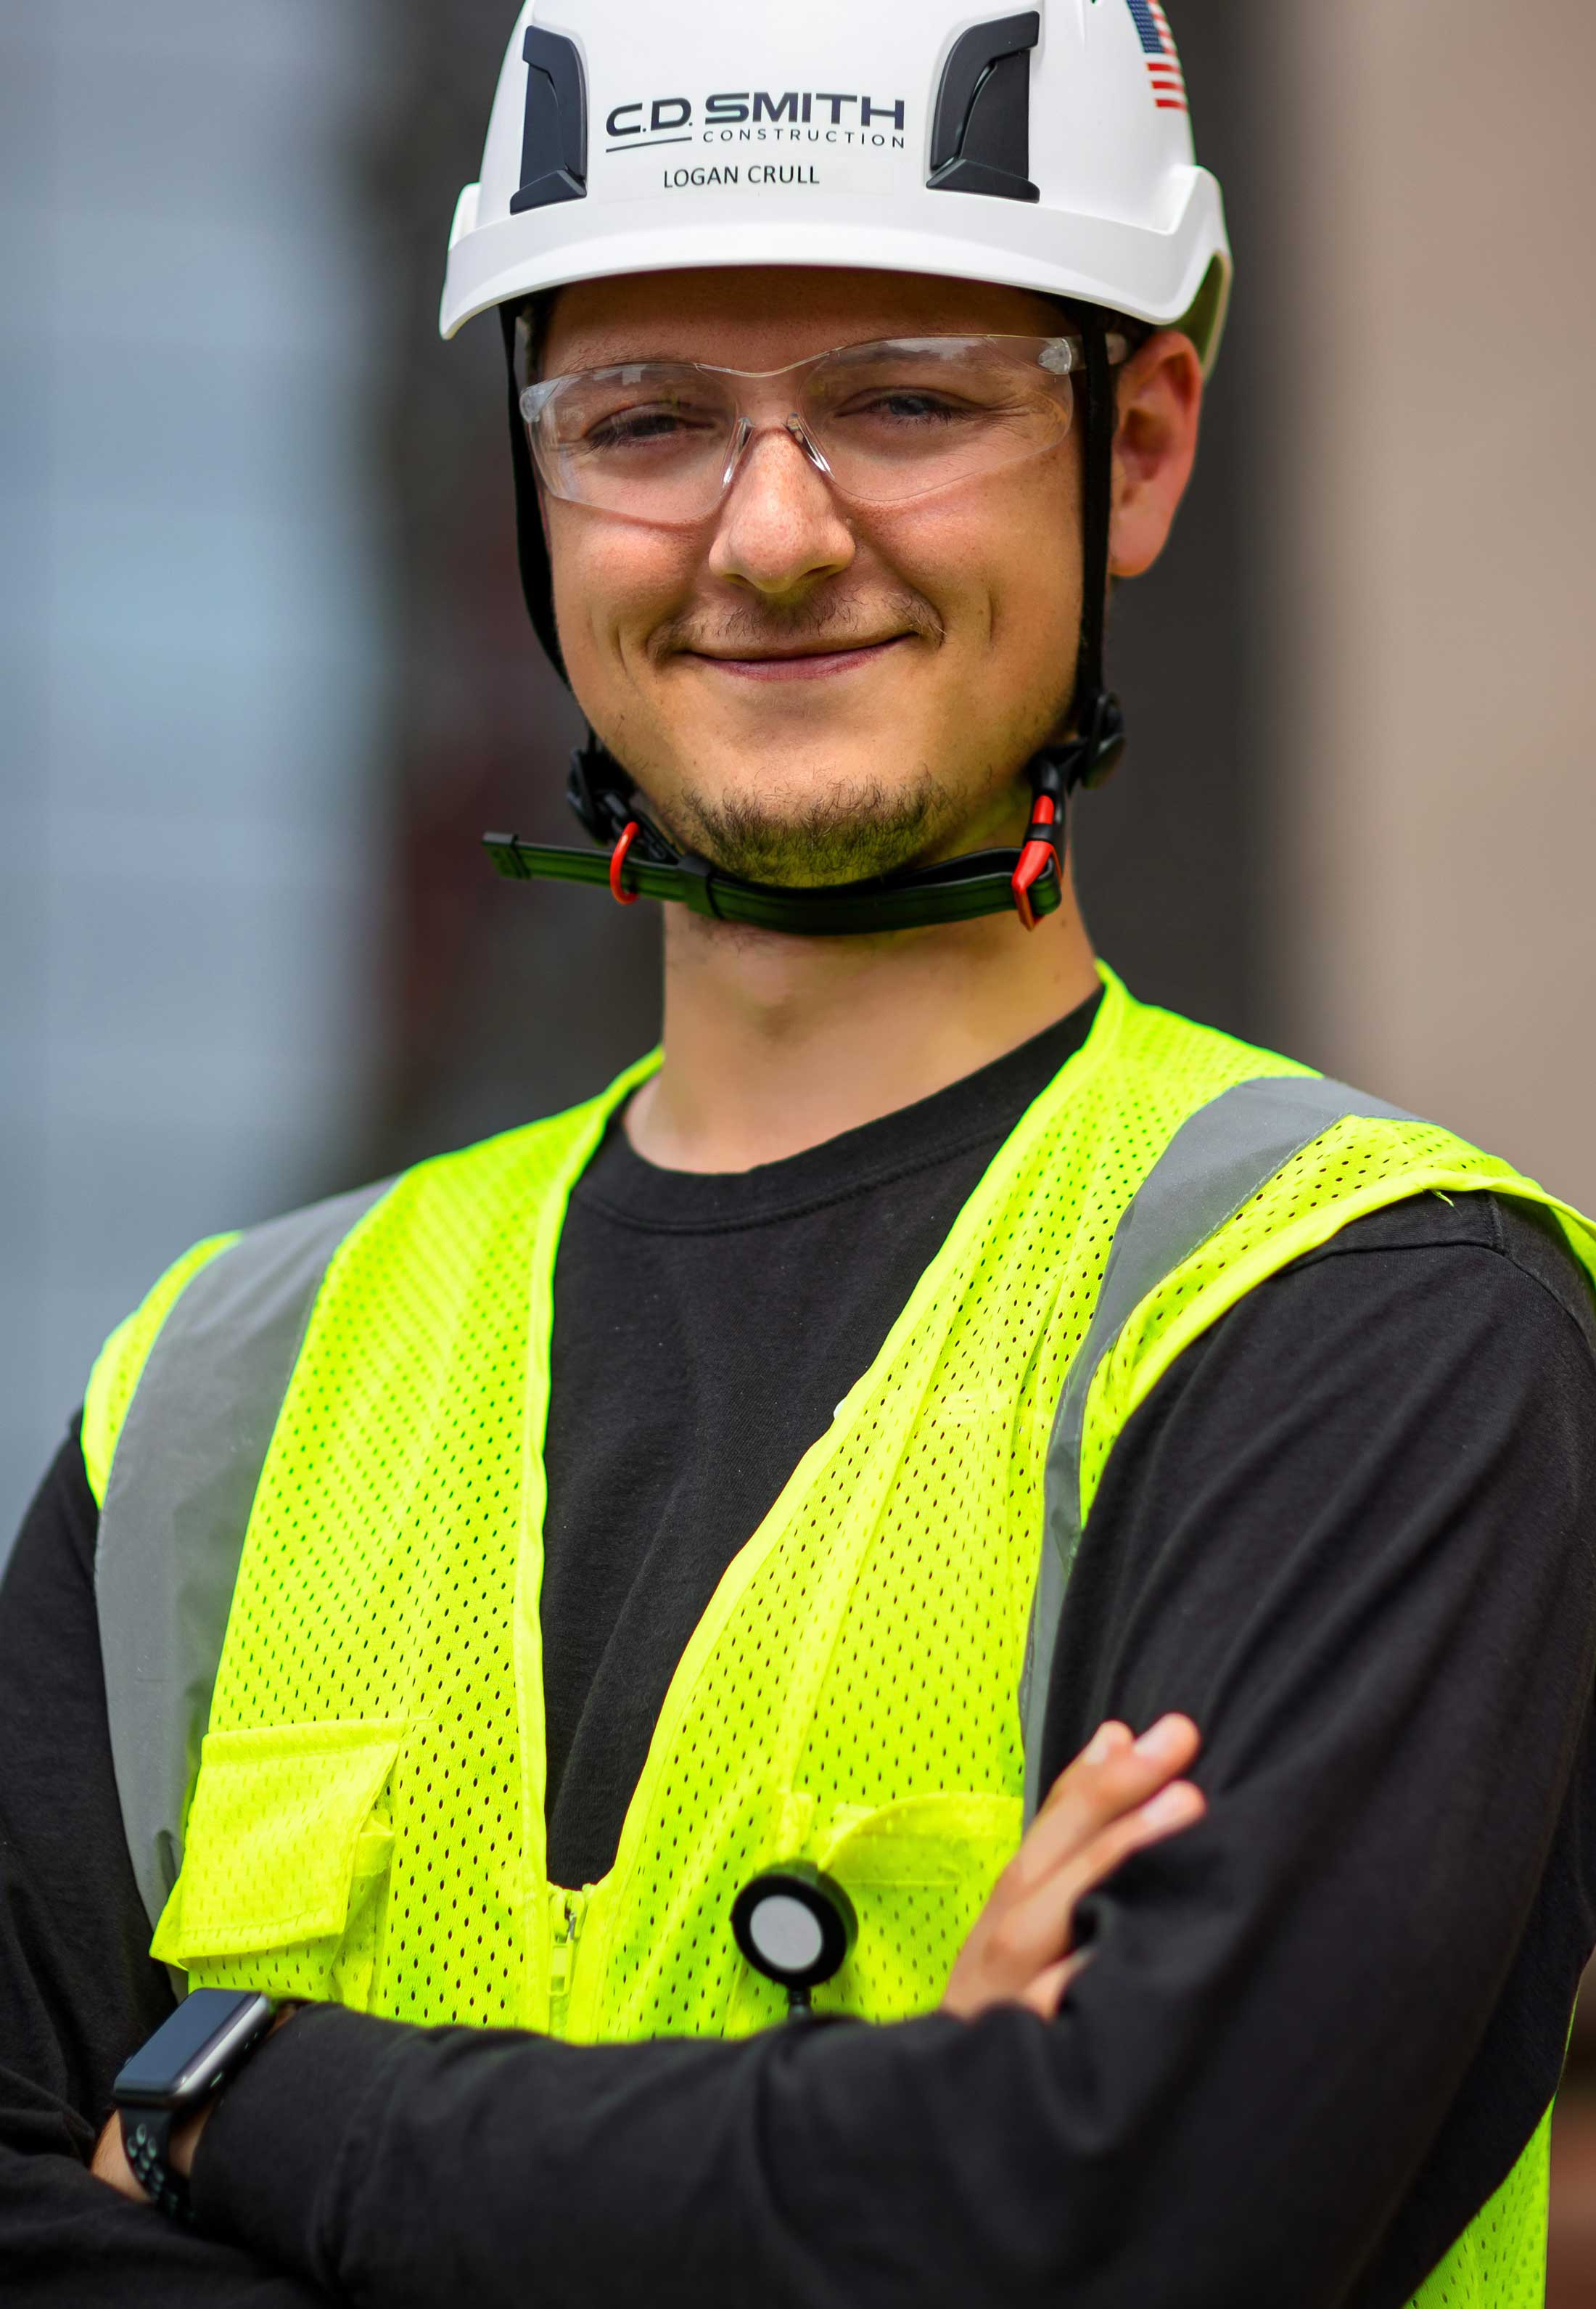 C.D. Smith Construction Project Manager Logan Crull